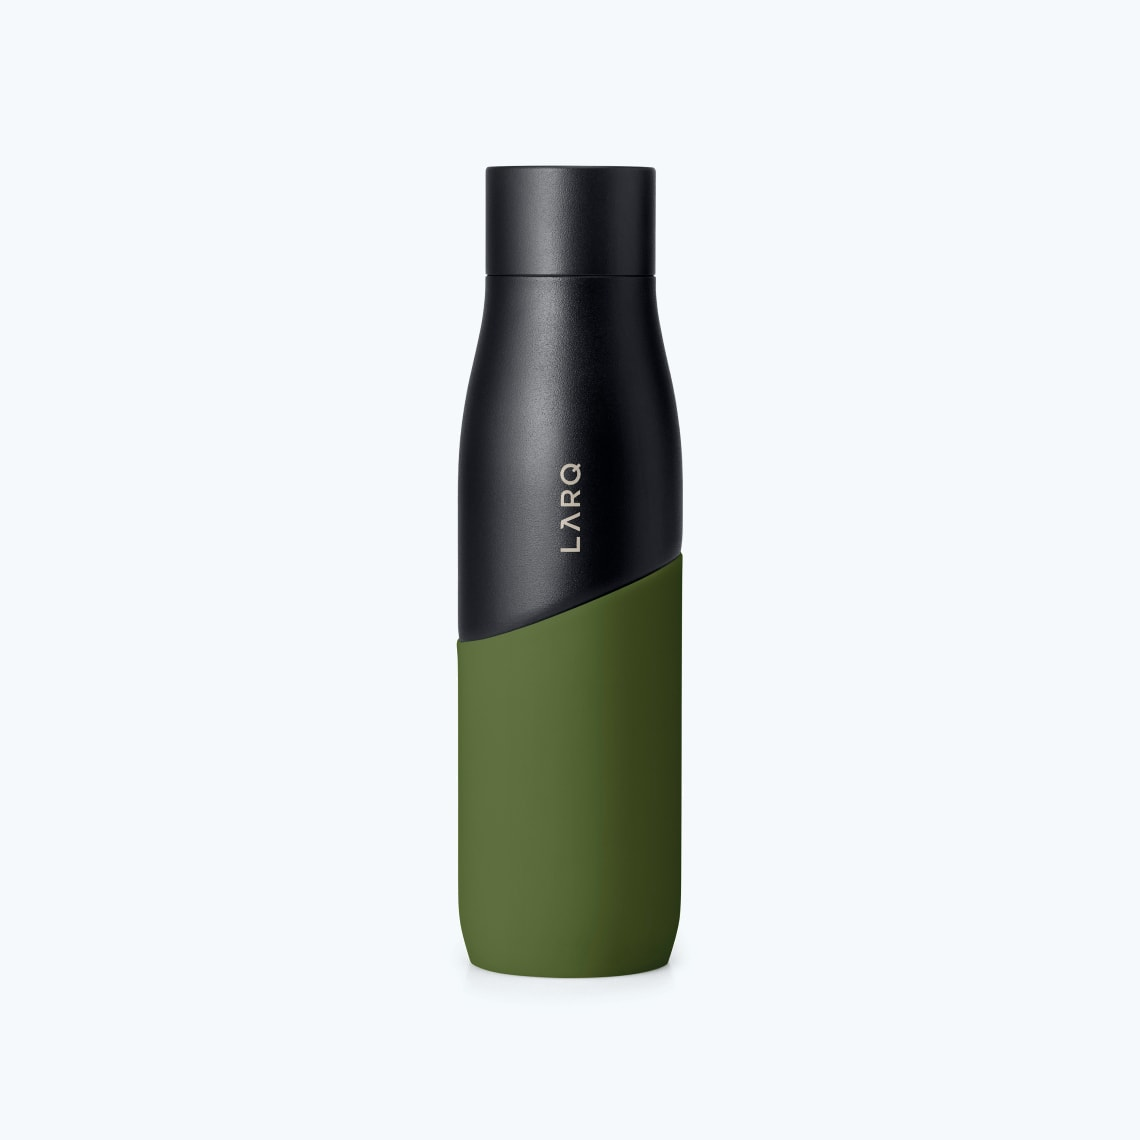 LARQ Bottle Movement PureVis™ Black / Pine main